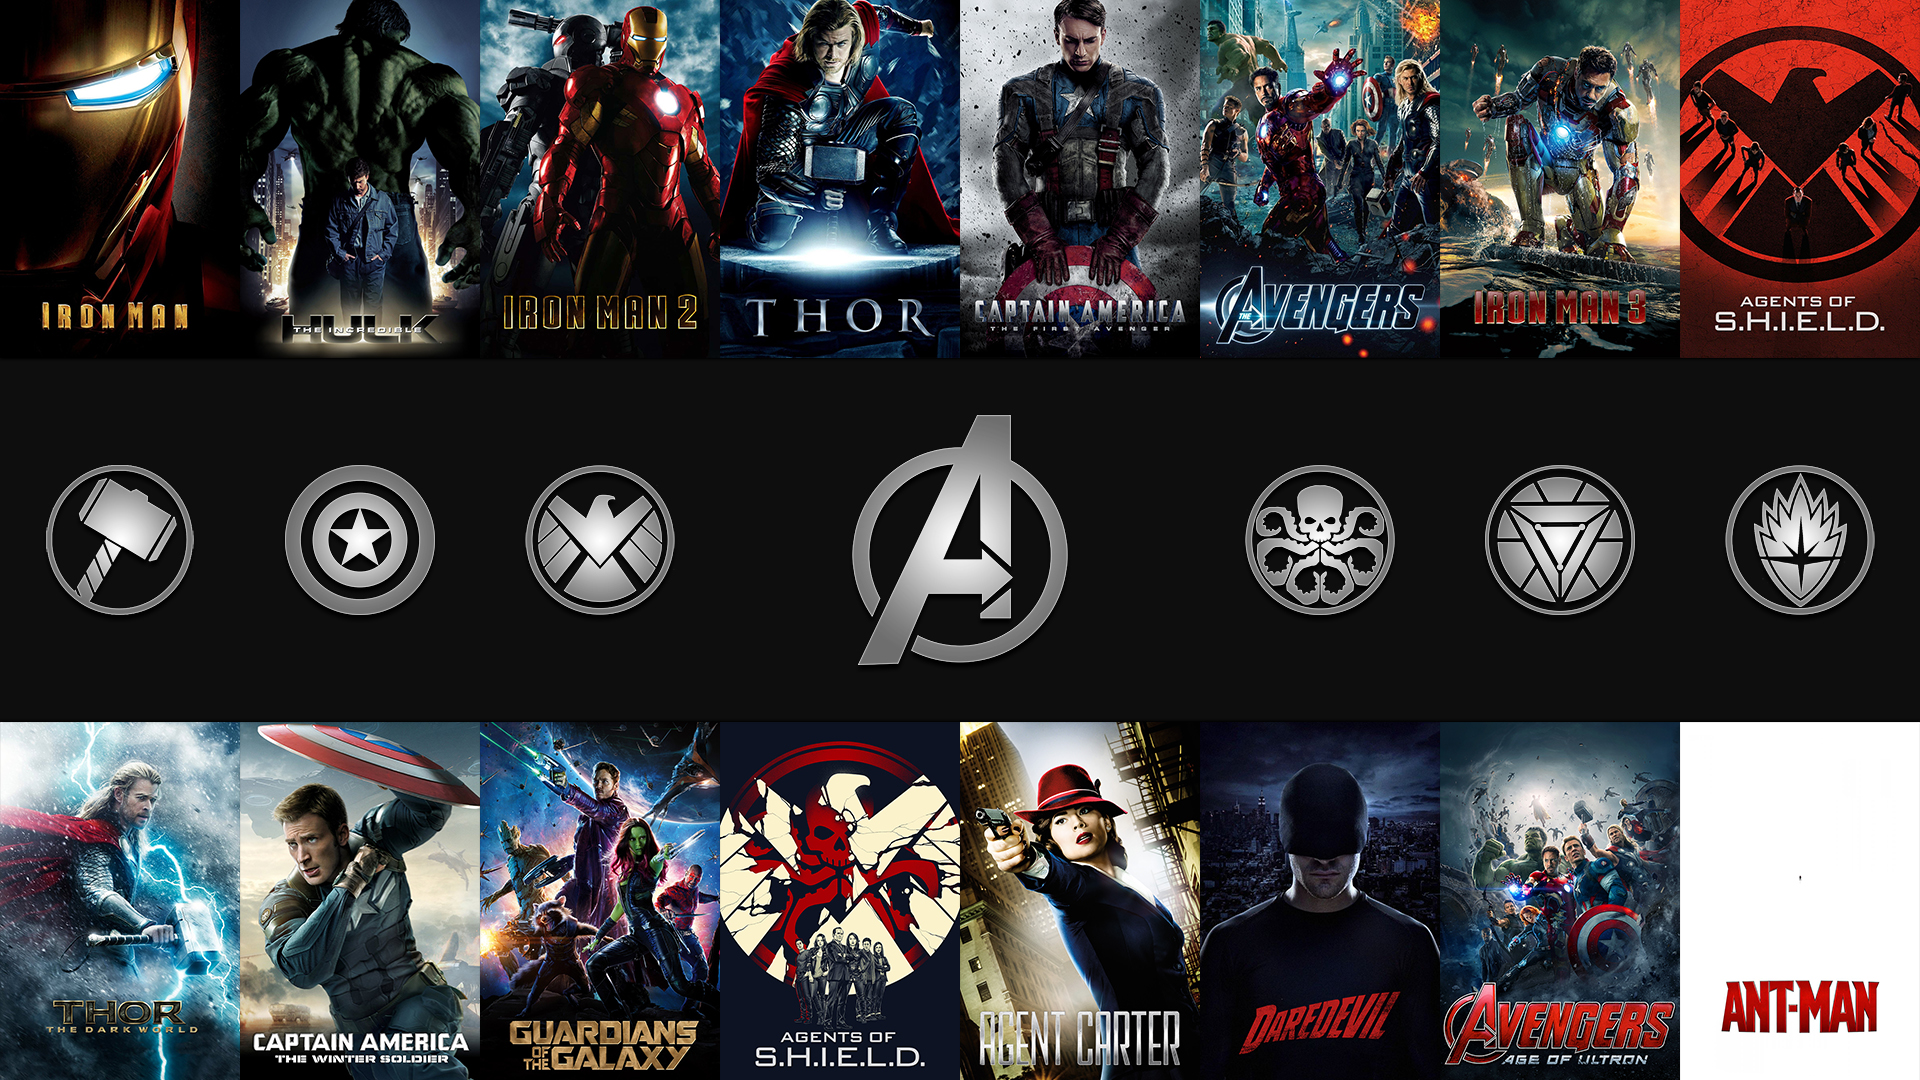 Marvel Cinematic Universe July 2015 Edition by JexXero 1920x1080